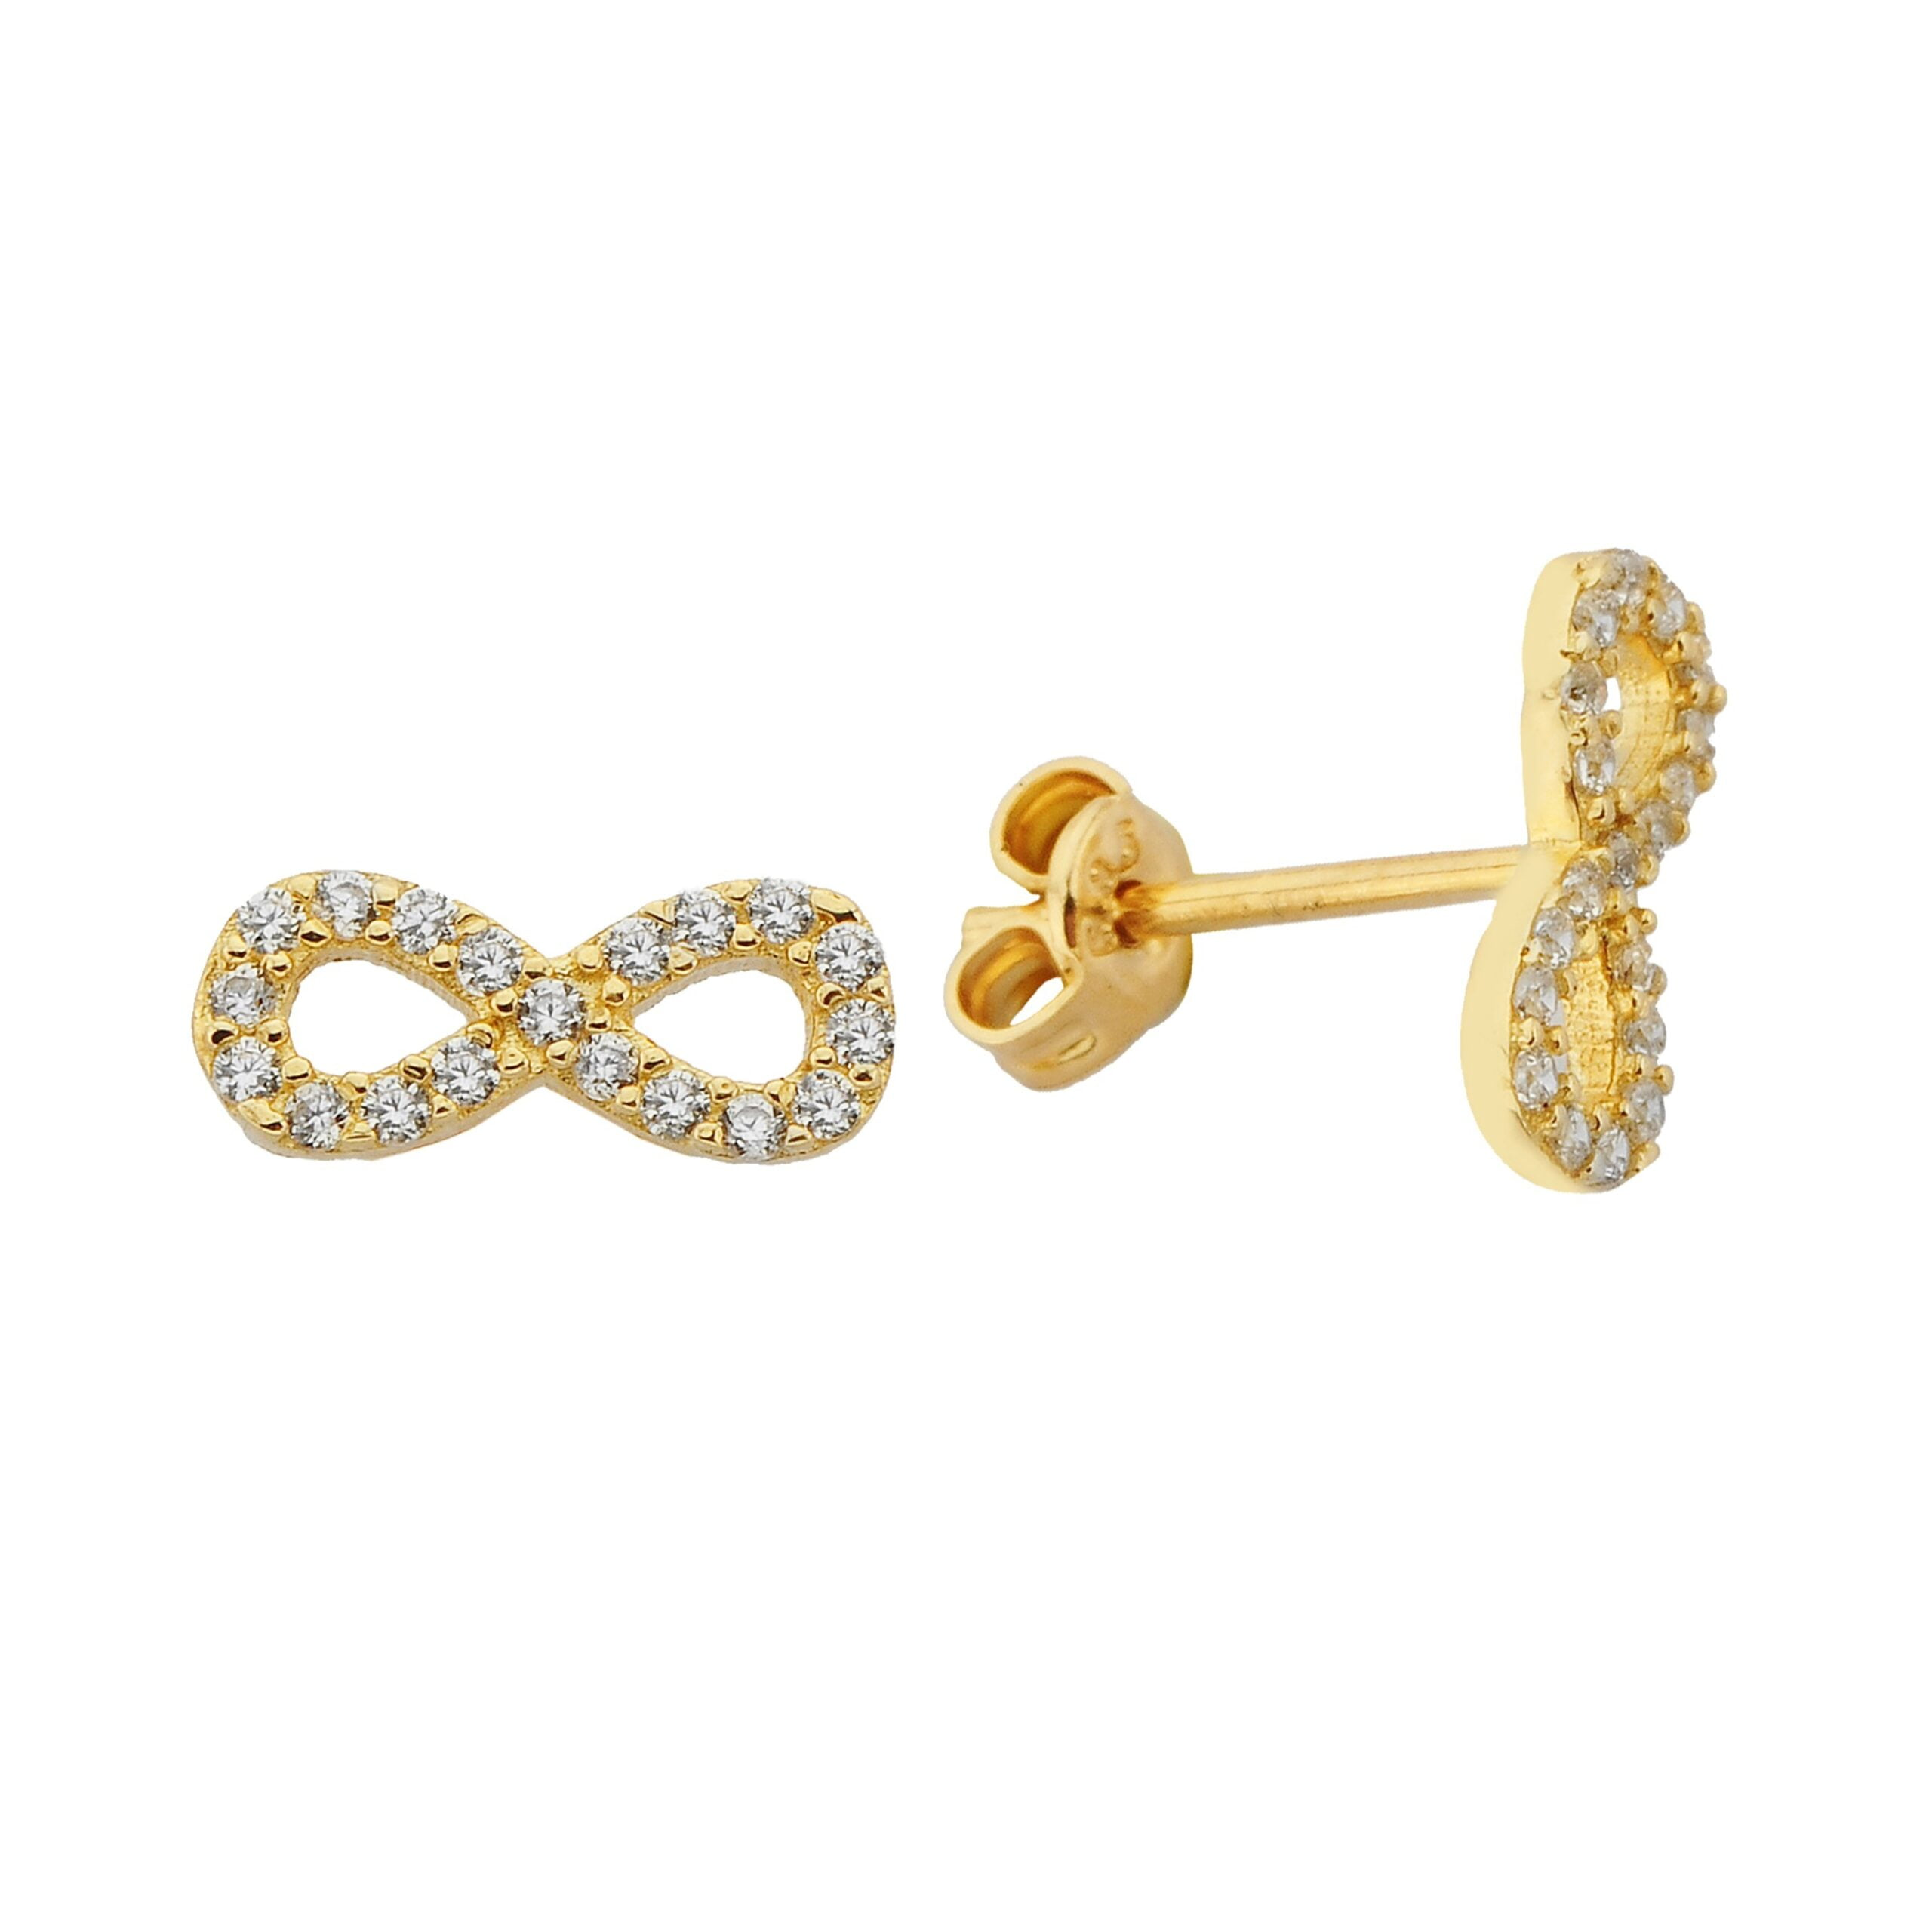 14K Real Solid Gold Infinity Stud Earrings for Women | Best Birthday Gift Christmas Xmas Mother's Day Handmade jewelry diamond